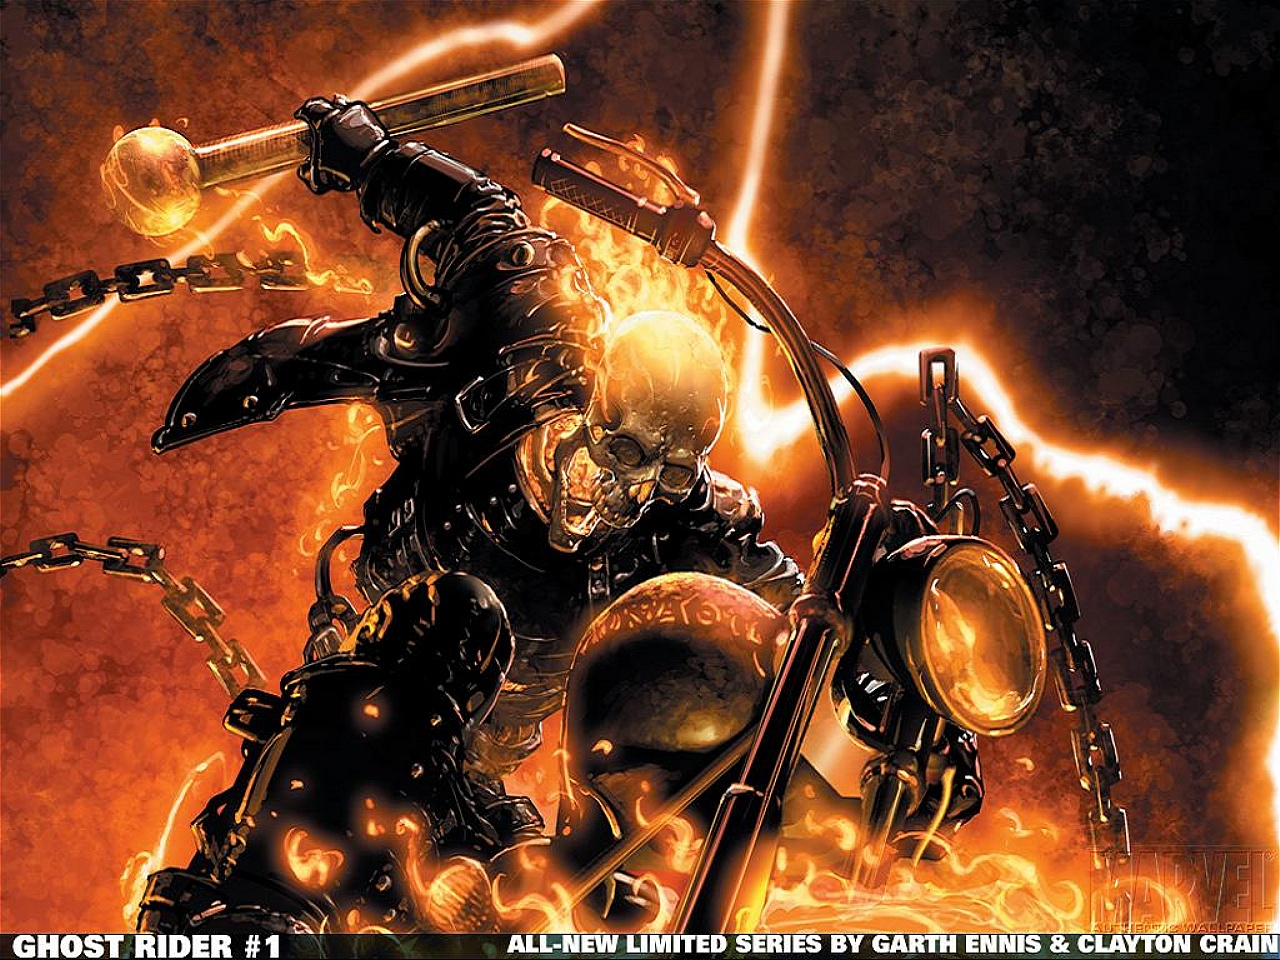 Ghost Rider Wallpaper on WallpaperSafari